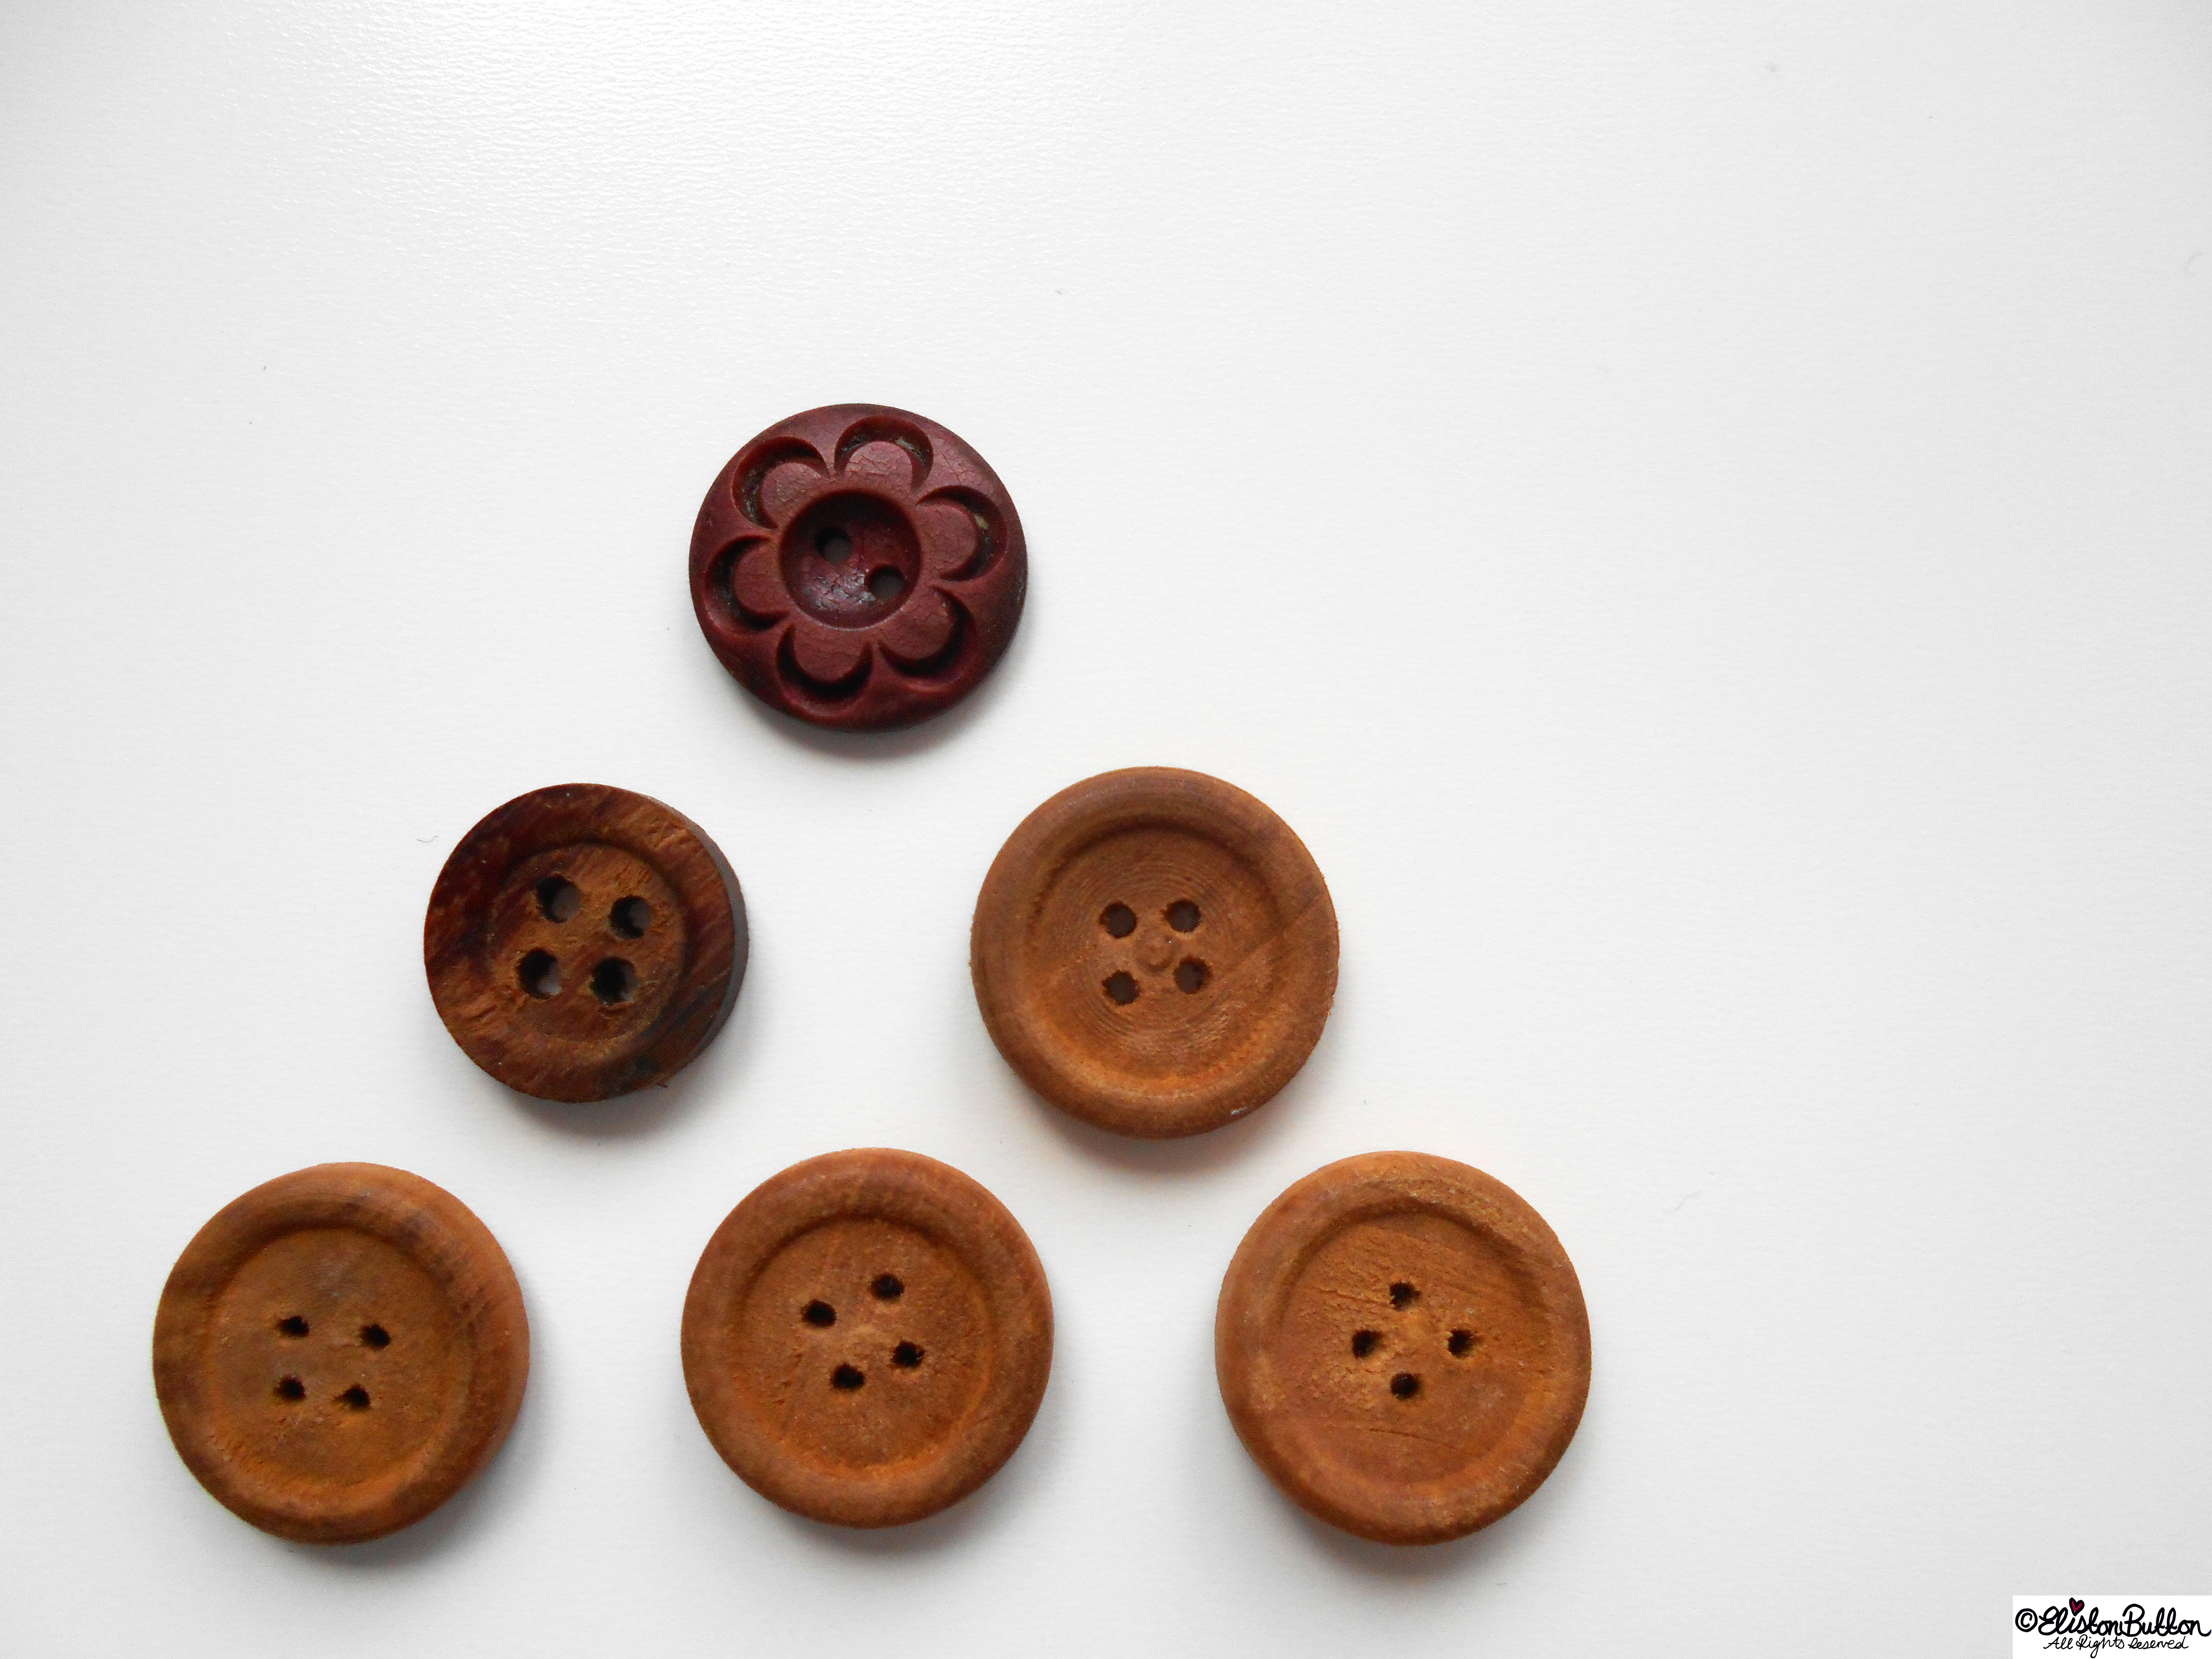 Wooden Buttons - Gifts from France at www.elistonbutton.com - Eliston Button - That Crafty Kid – Art, Design, Craft & Adventure.